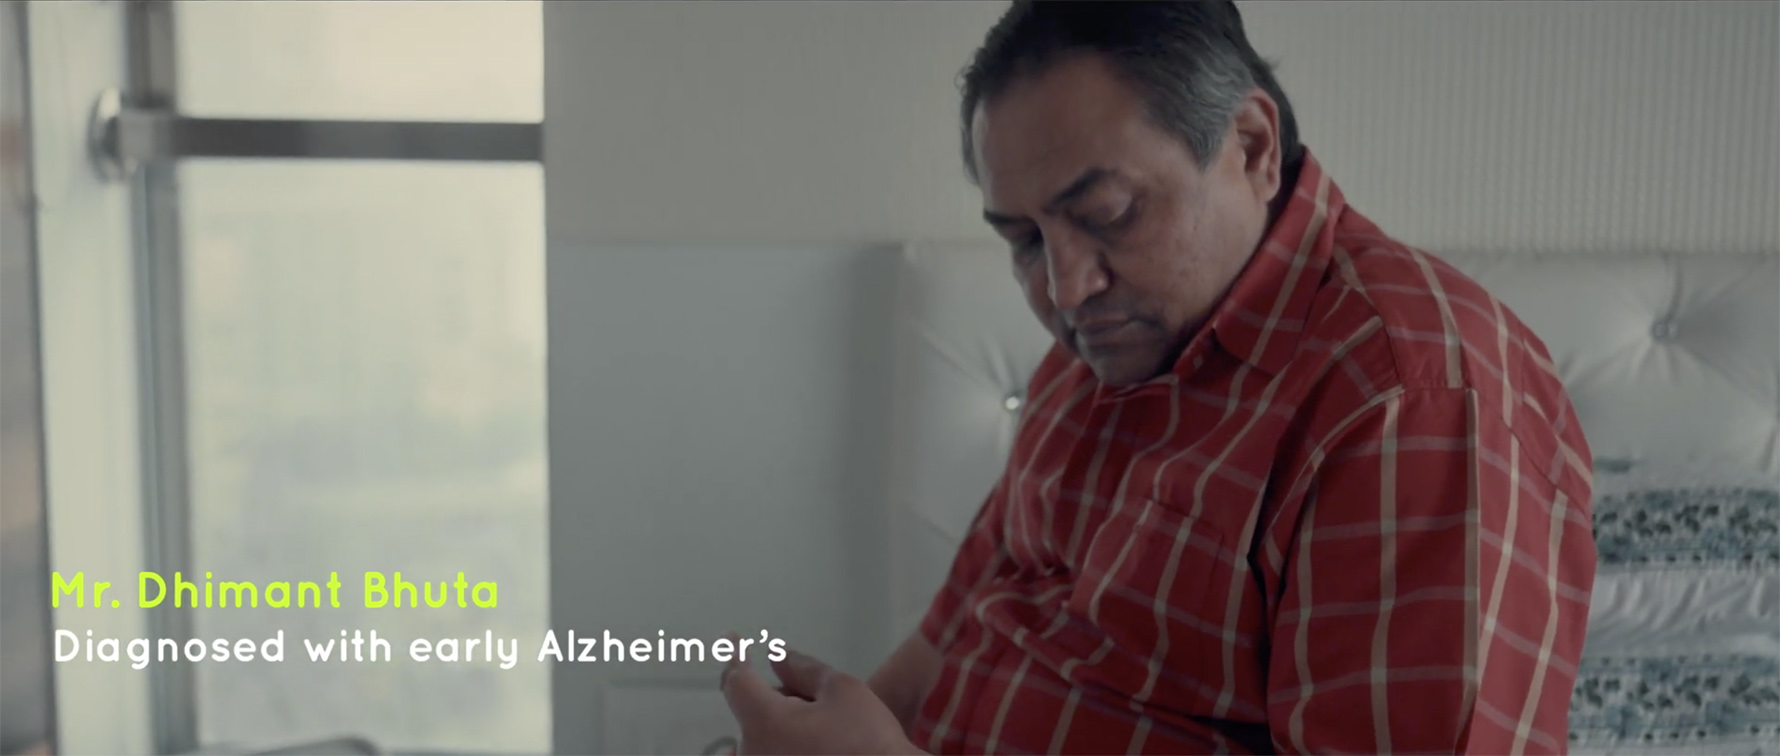 MTV launches 'Memory Karaoke' initiative in partnership with Ogilvy India to aid early Alzheimer's Disease with music